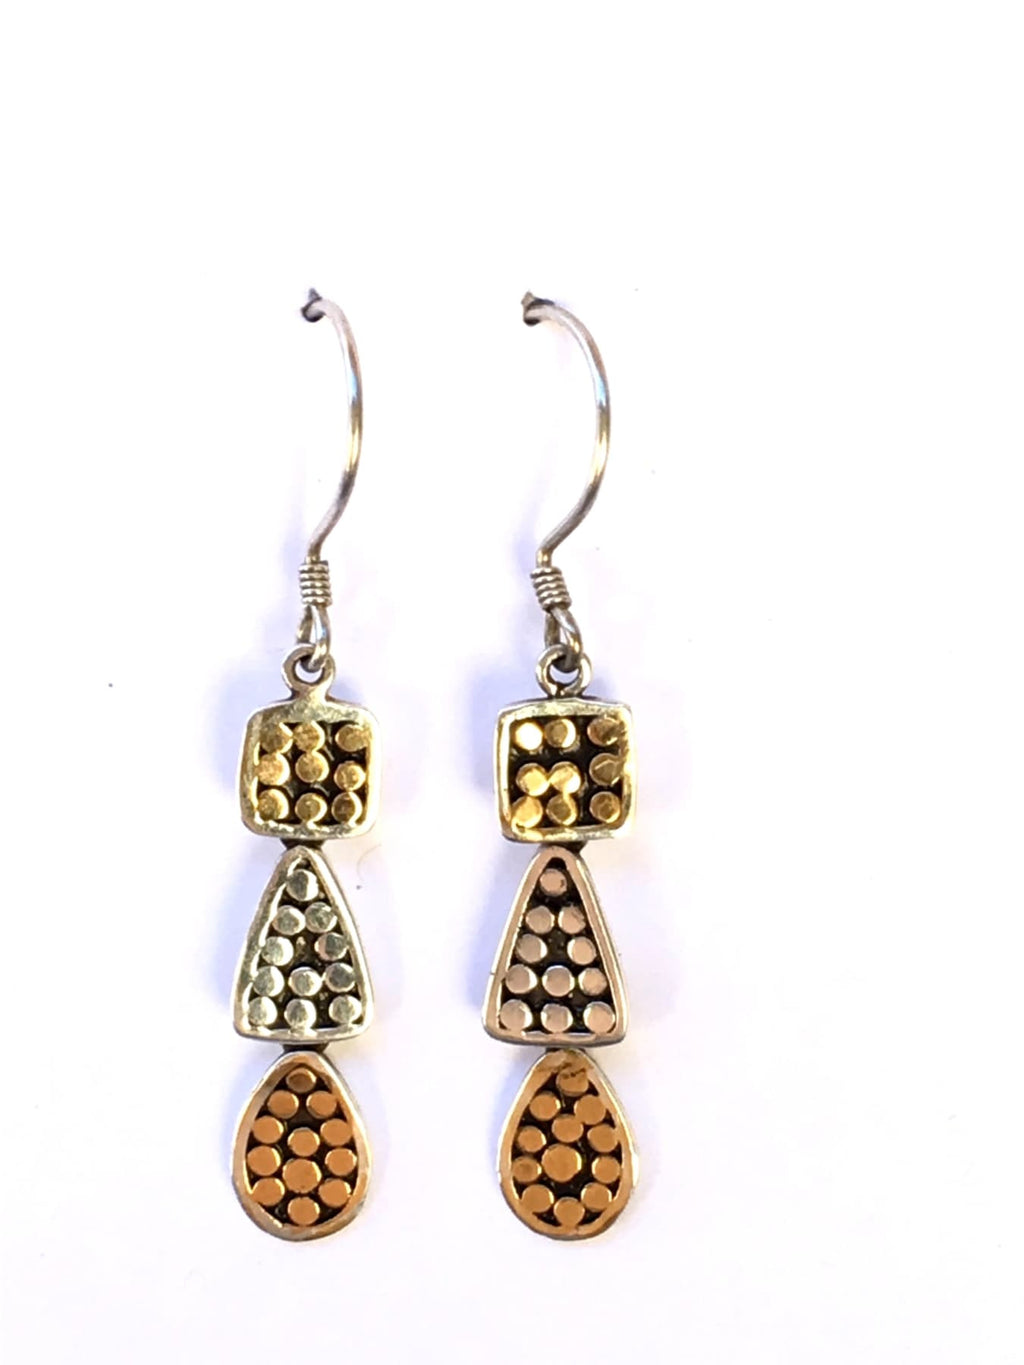 Sterling Silver and Gold Geometric Dangle Earrings